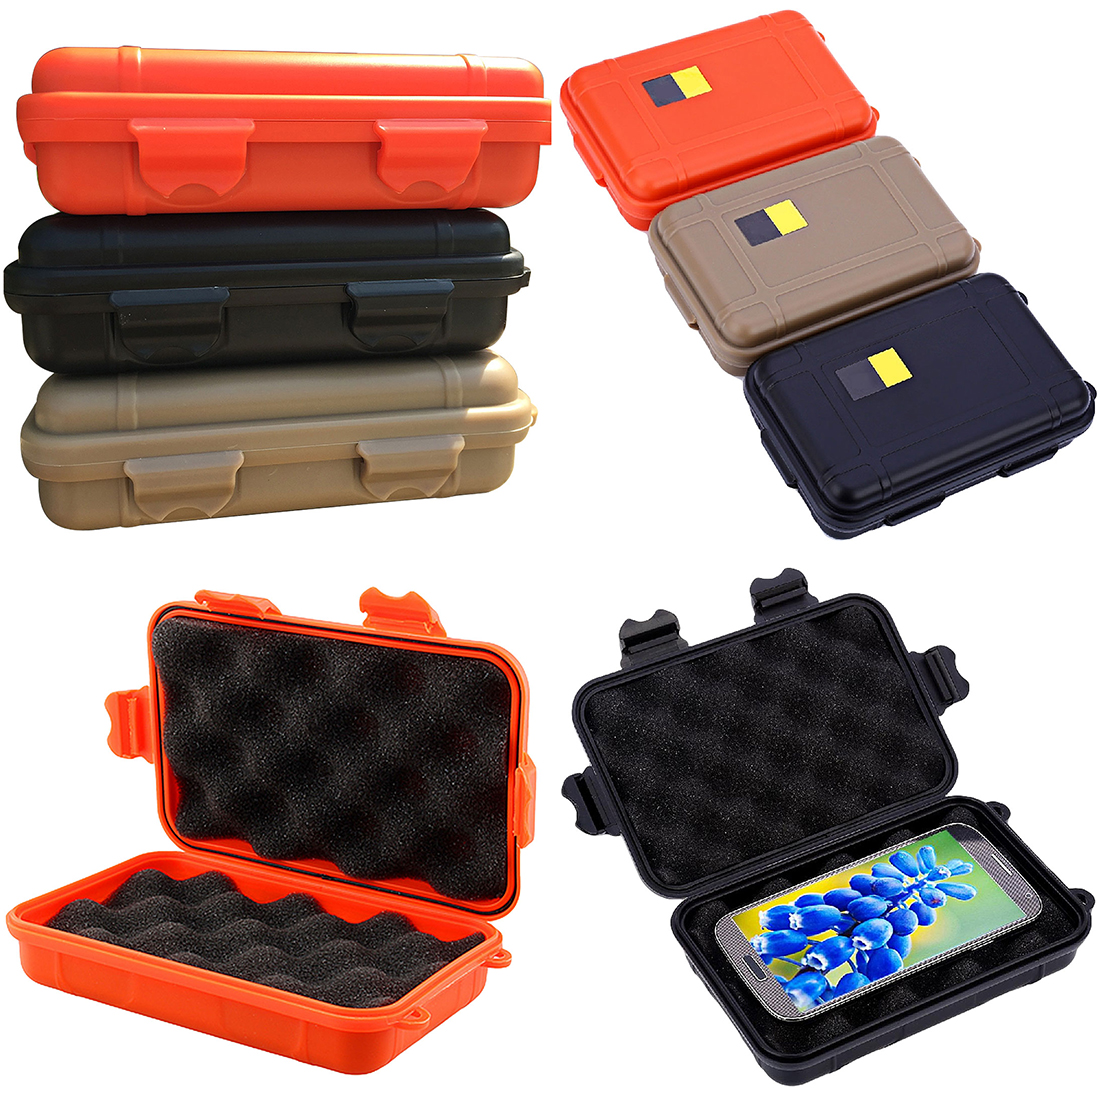 1pcs Outdoor Shockproof Waterproof Boxes Tool Box Survival Airtight Case Holder For Storage Tools Travel Sealed Container